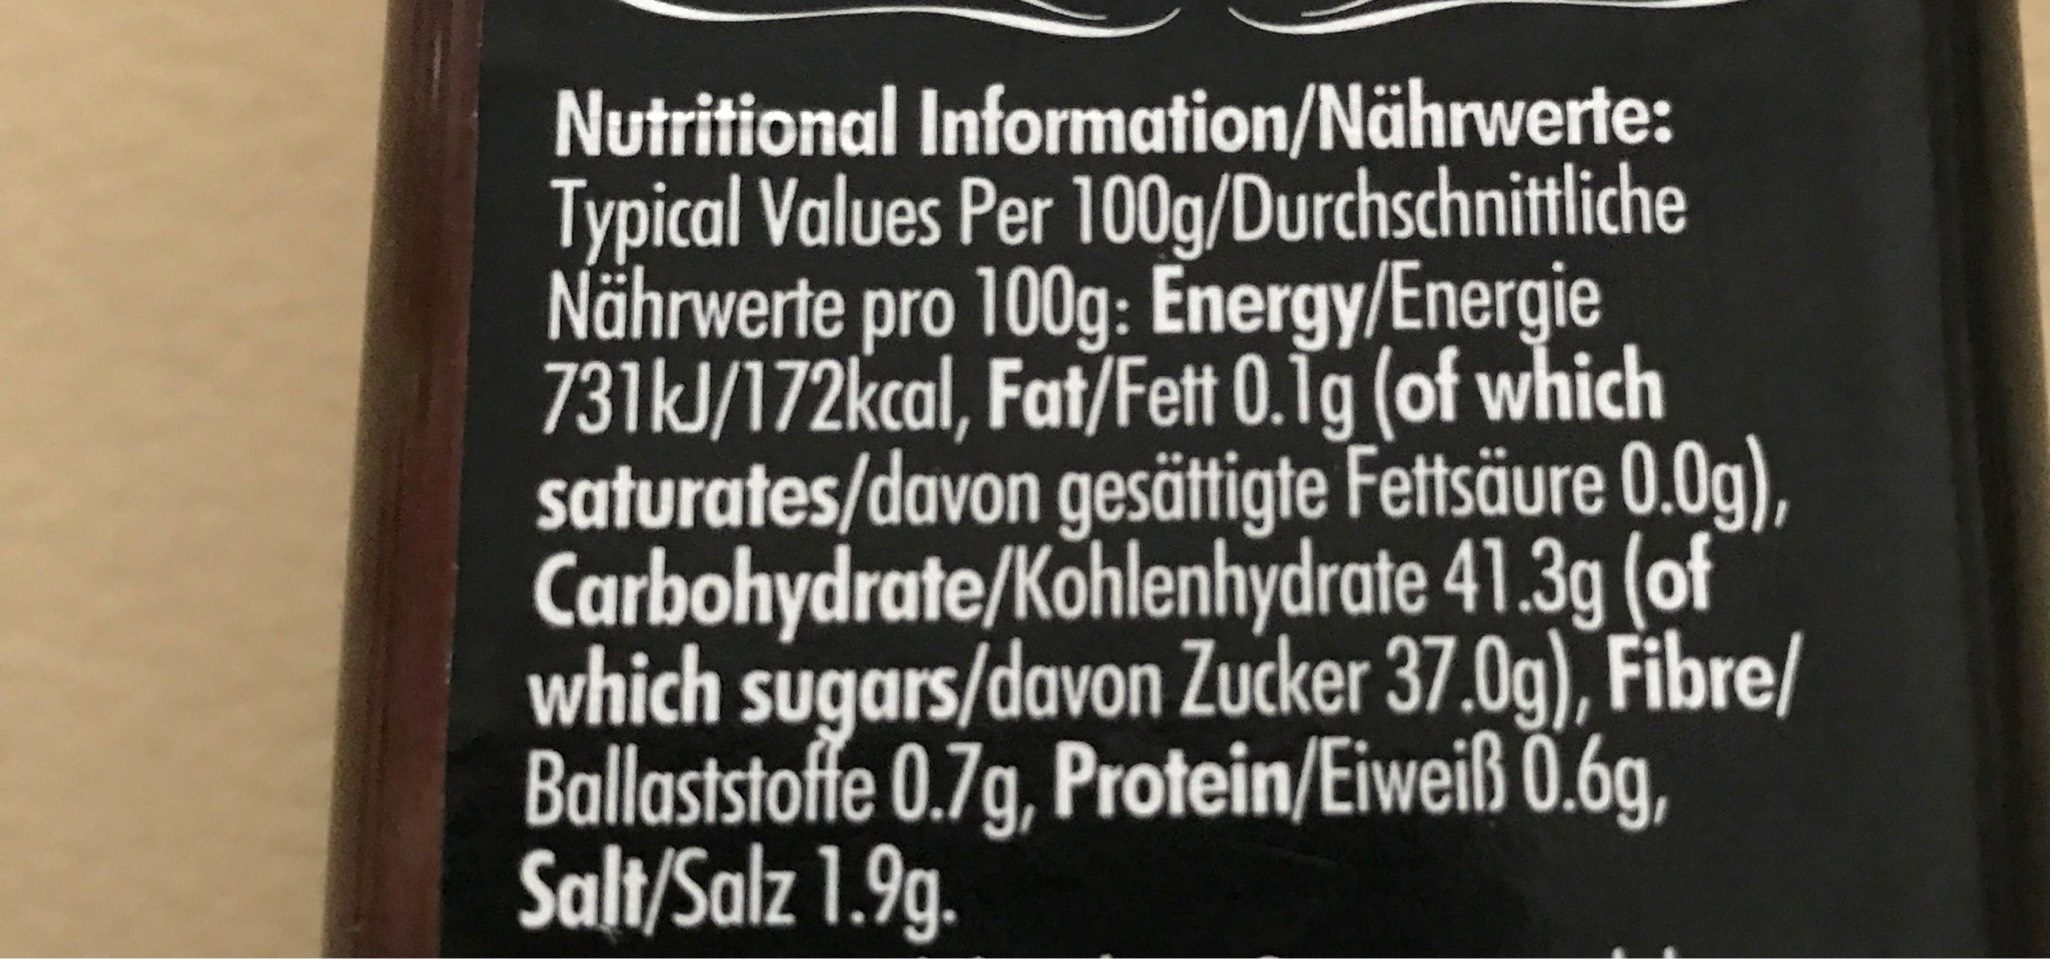 Barbecue Sauce Full Flavor Smokey - Nutrition facts - fr